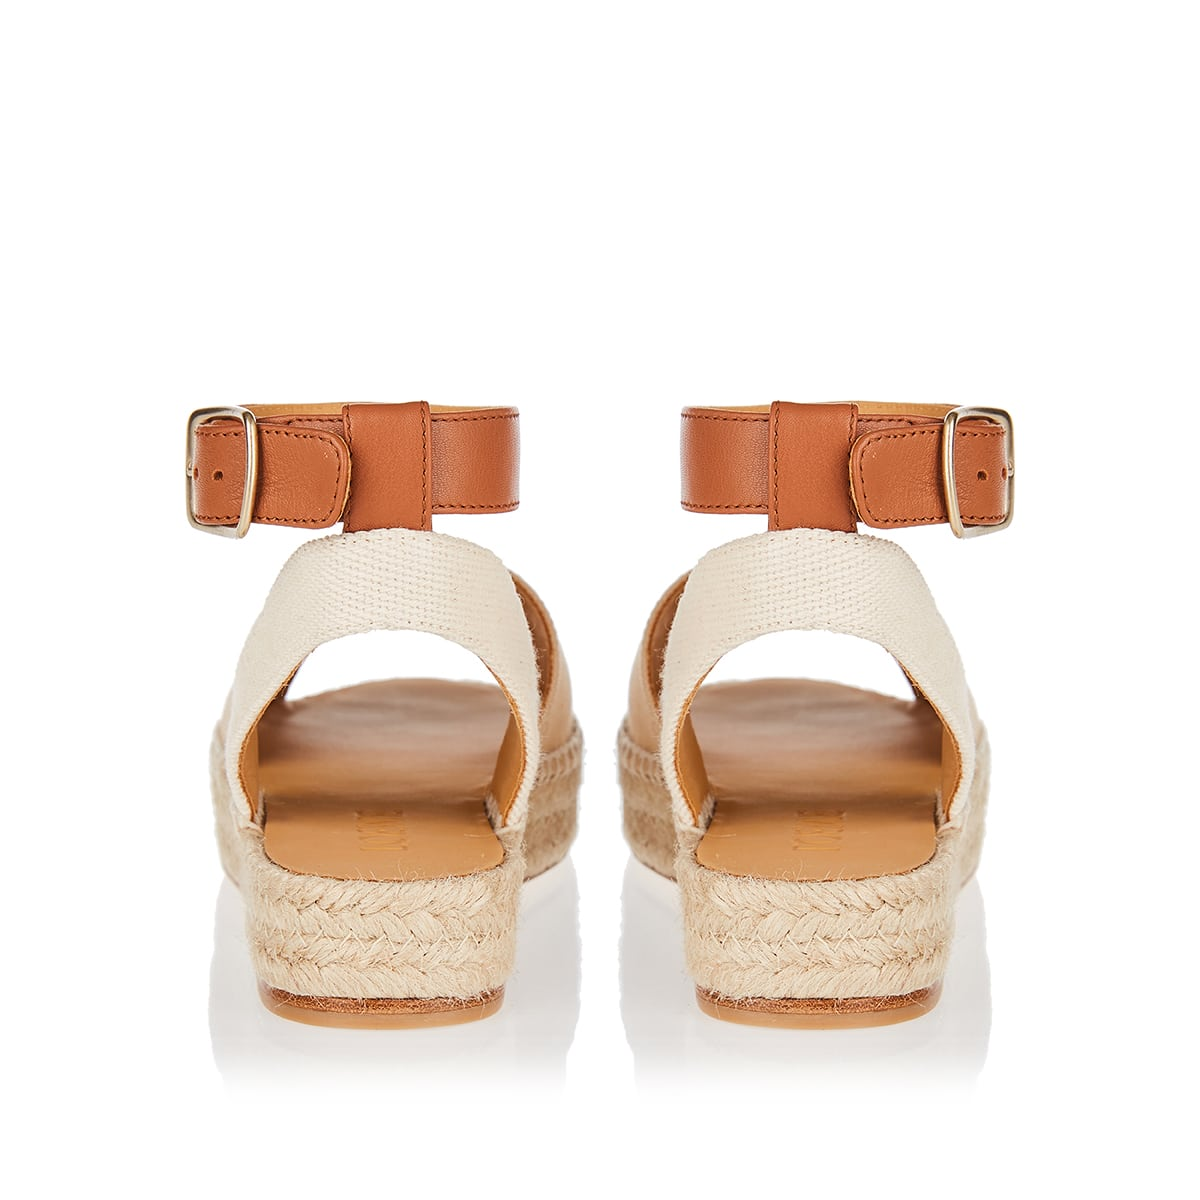 Anagram canvas and leather sandals